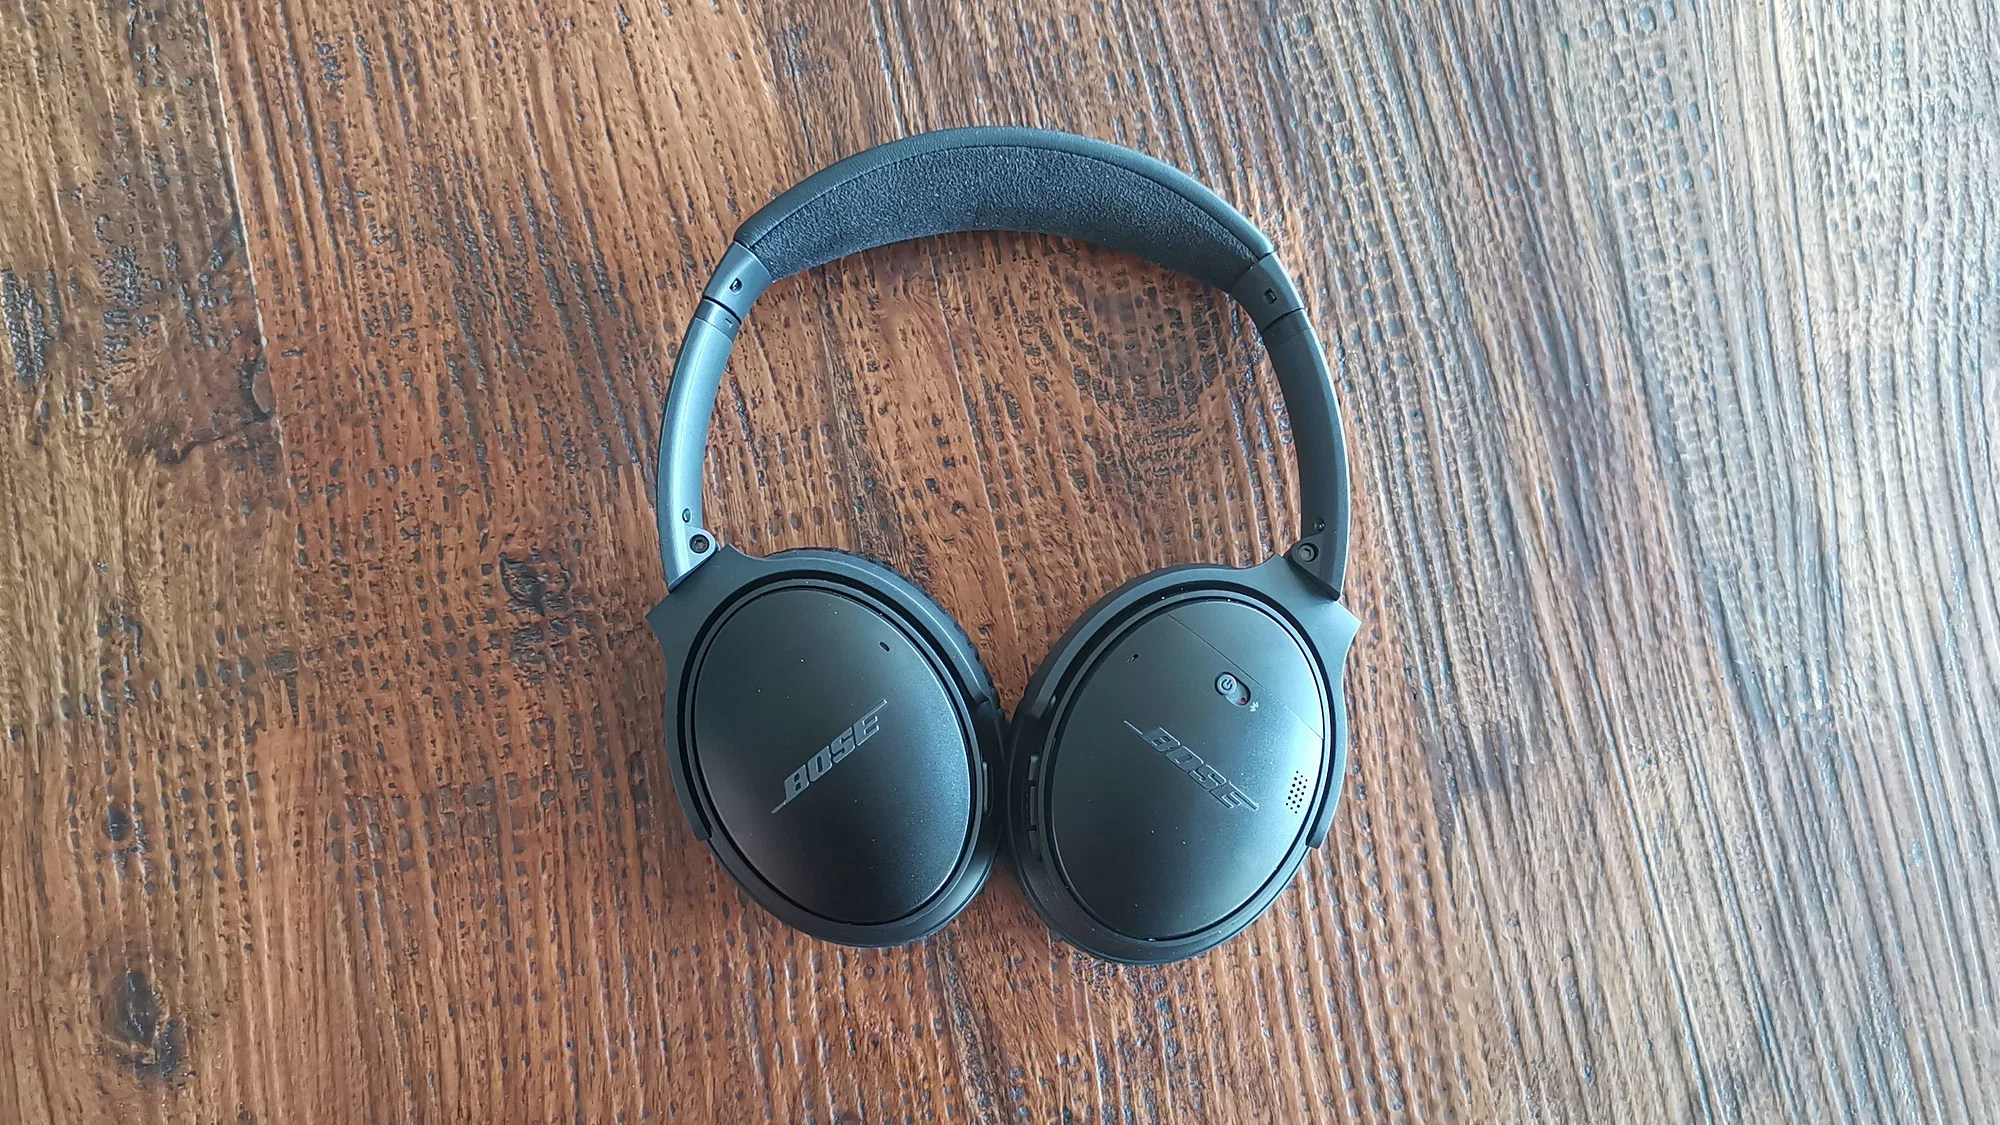 Sony WH-1000XM3 comparison with Bose QC35 II